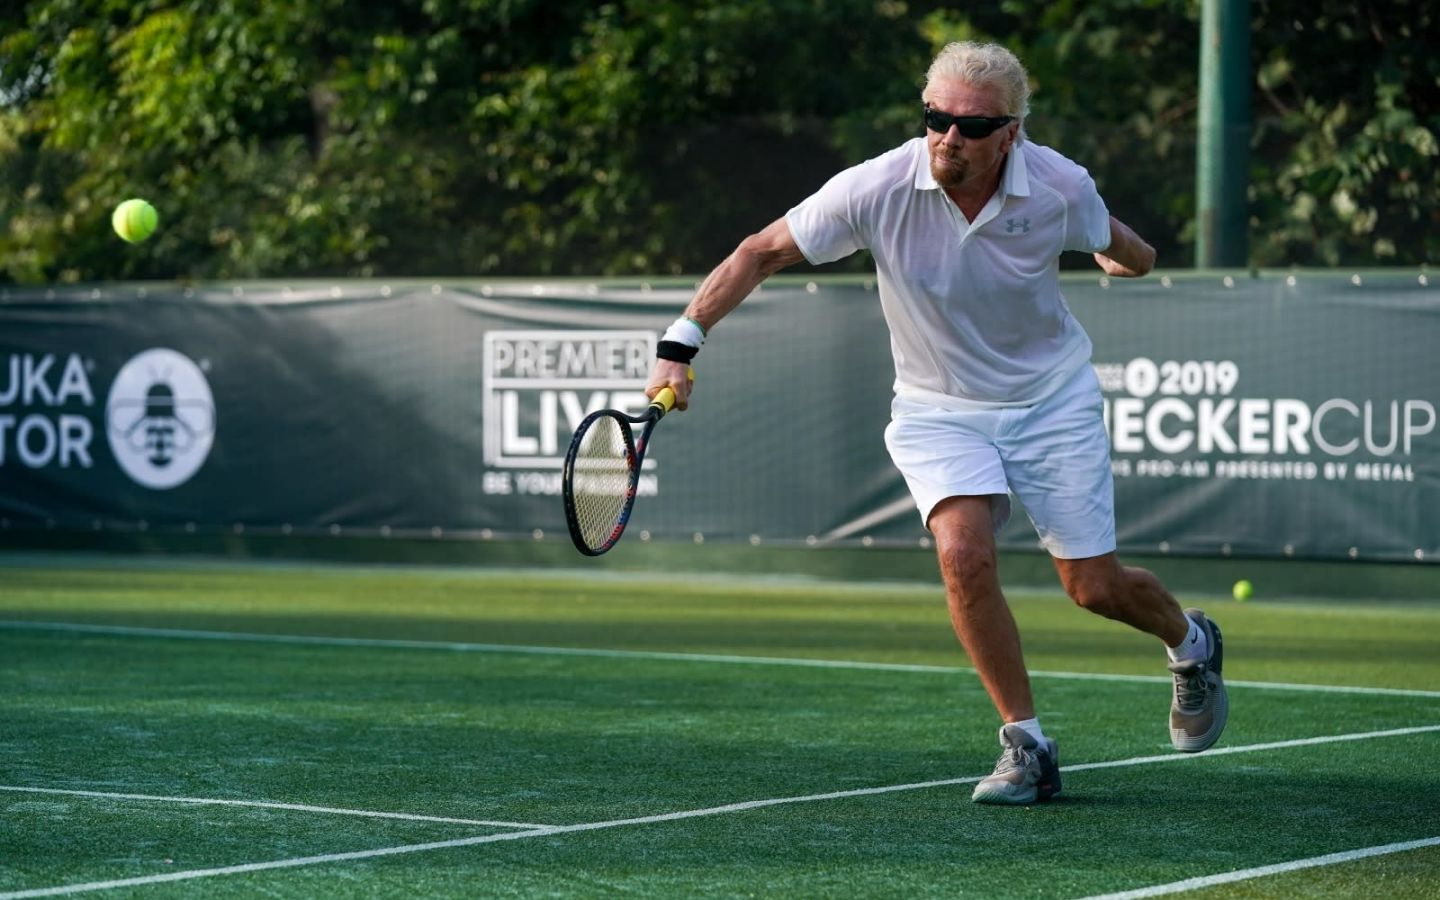 Richard Branson playing tennis